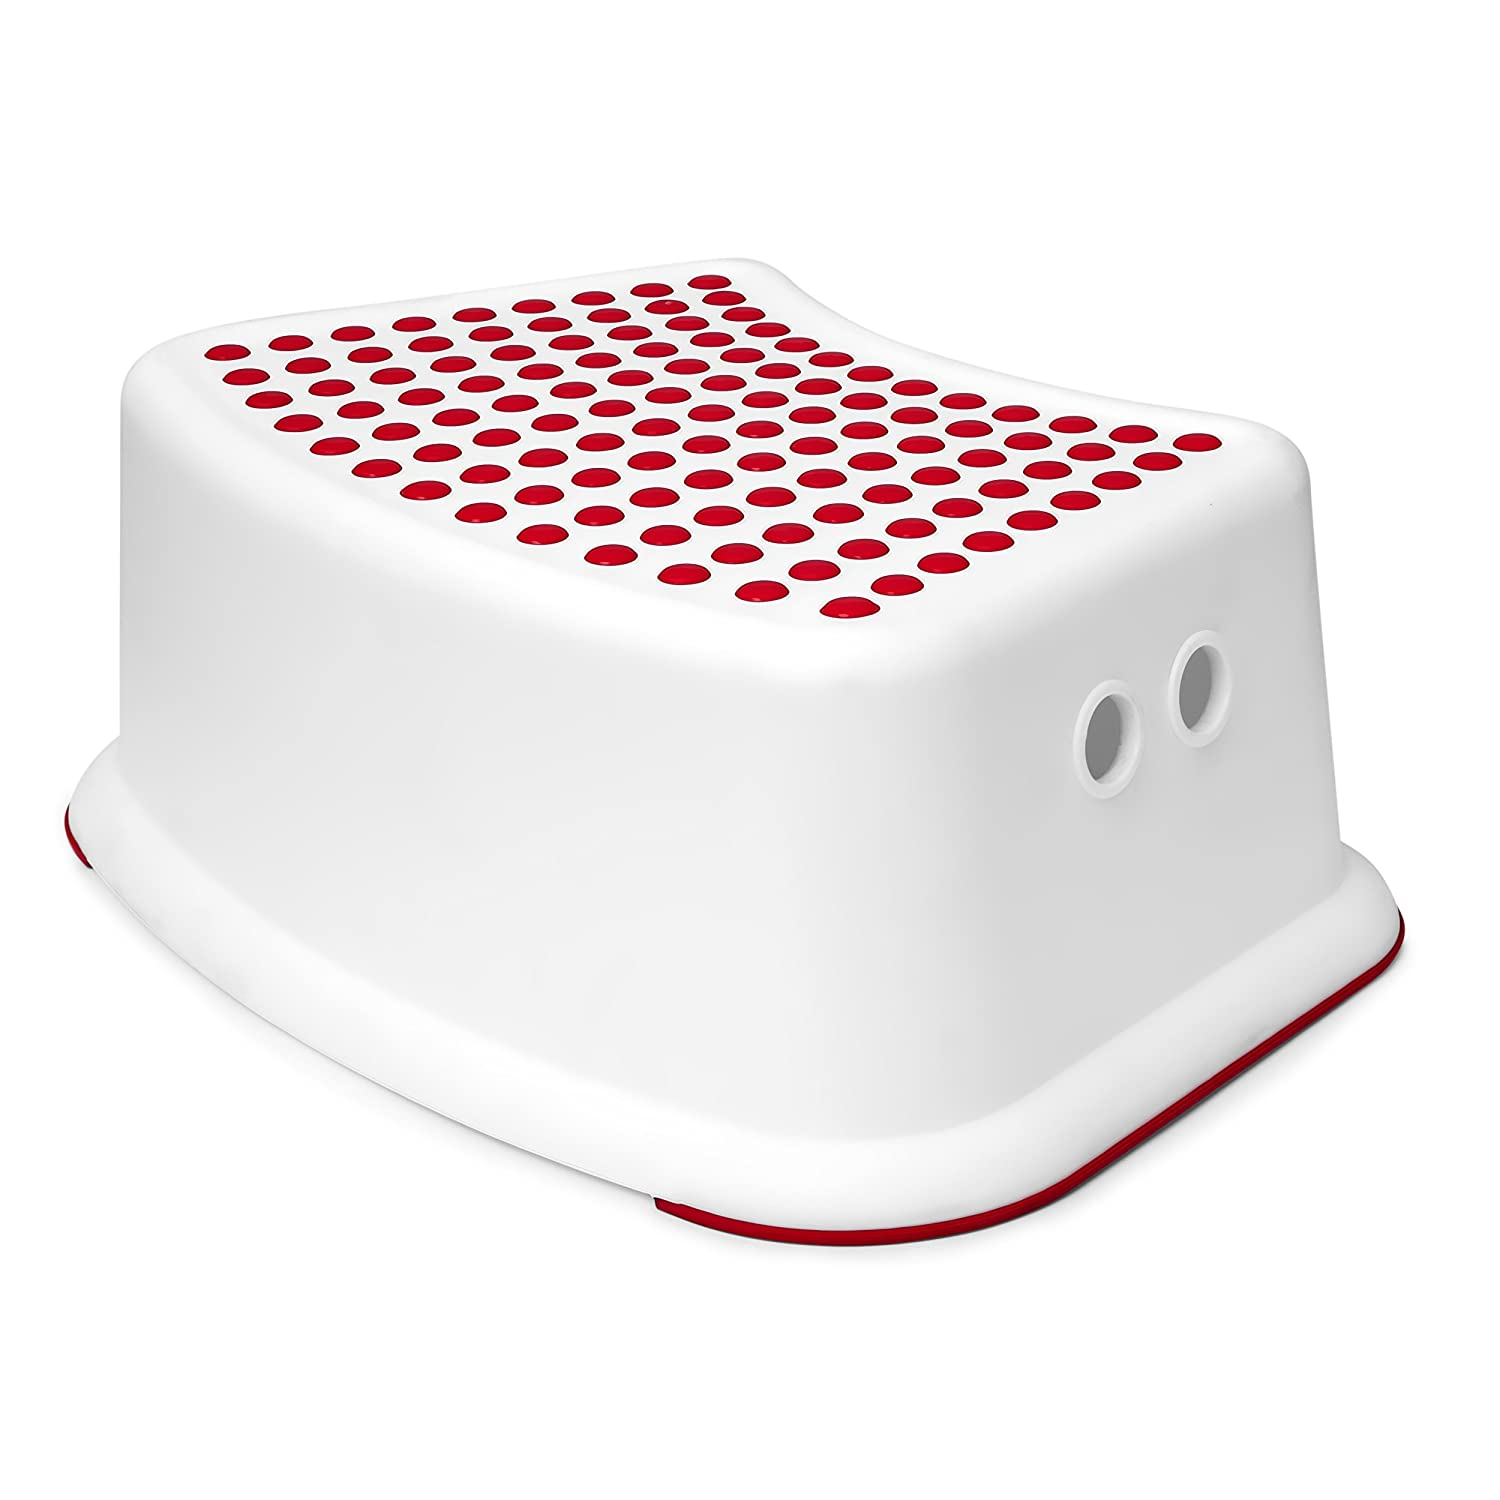 Girls Red Step Stool - Great For Potty Training, Bathroom, Bedroom, Toilet, Toy Room, Kitchen, and Living Room. Perfect For Your House TPS-1